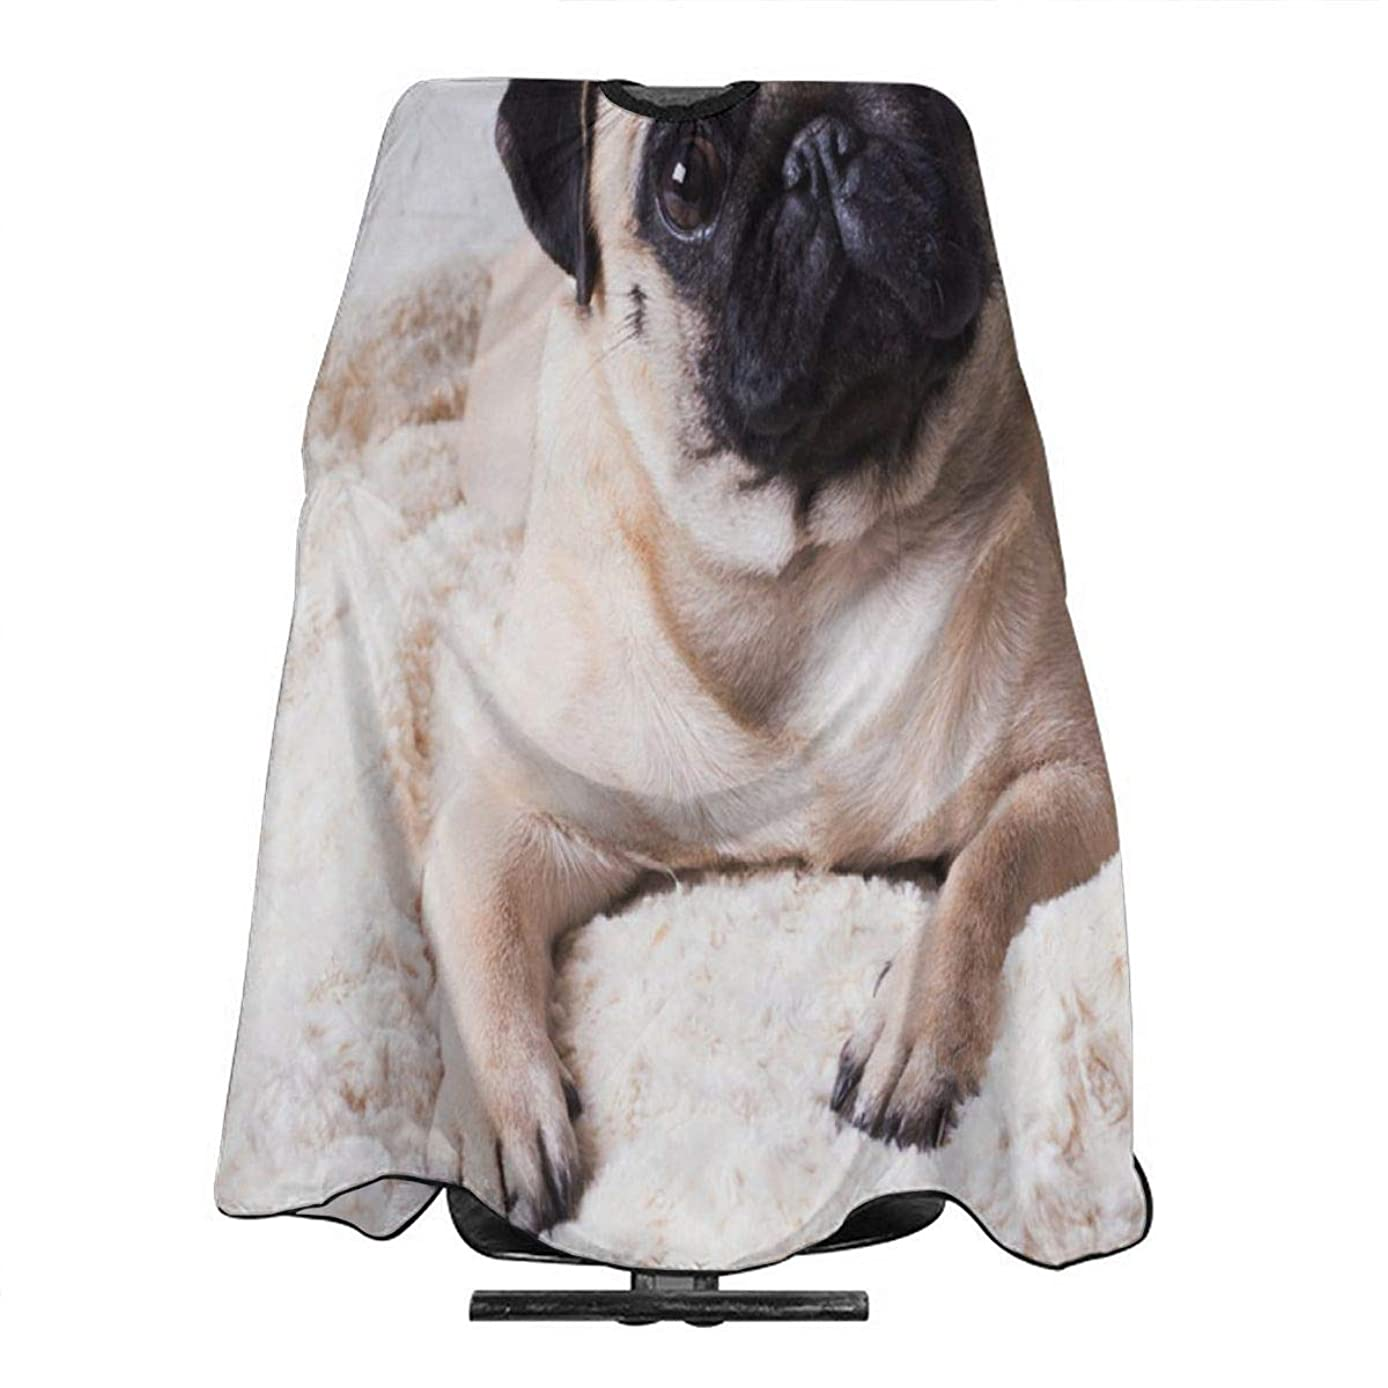 Funny Pug Barber Salon Cape Apron Makeup Comb Out Cape Bib, Salon Hair Dye, Shampoo, Chemical Waterproof Gown Cloth for Adult/Women/Men